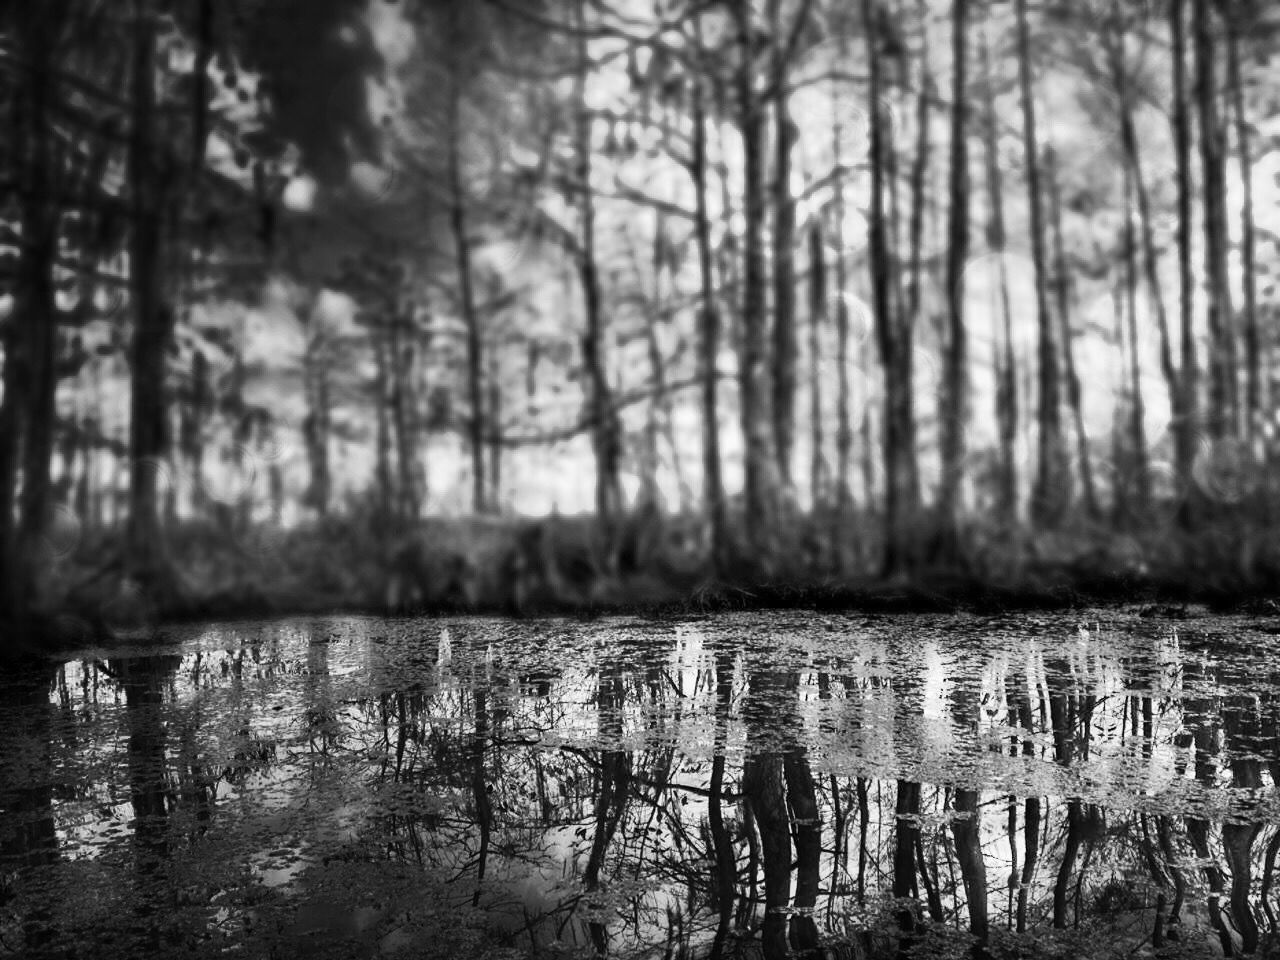 Reflection Trees Water Forest The Great Outdoors - 2017 EyeEm Awards Lake Close-up EyeEmBestPics EyeEm Best Shots Shootermag Exceptional Photographs EyeEm Gallery Eyem Collection Pupolar Photos A Week On Eyeem Eye4photography  EyeEm Nature Lover Water Reflections Light And Shadow Shades Of Nature Beauty Is Everywhere